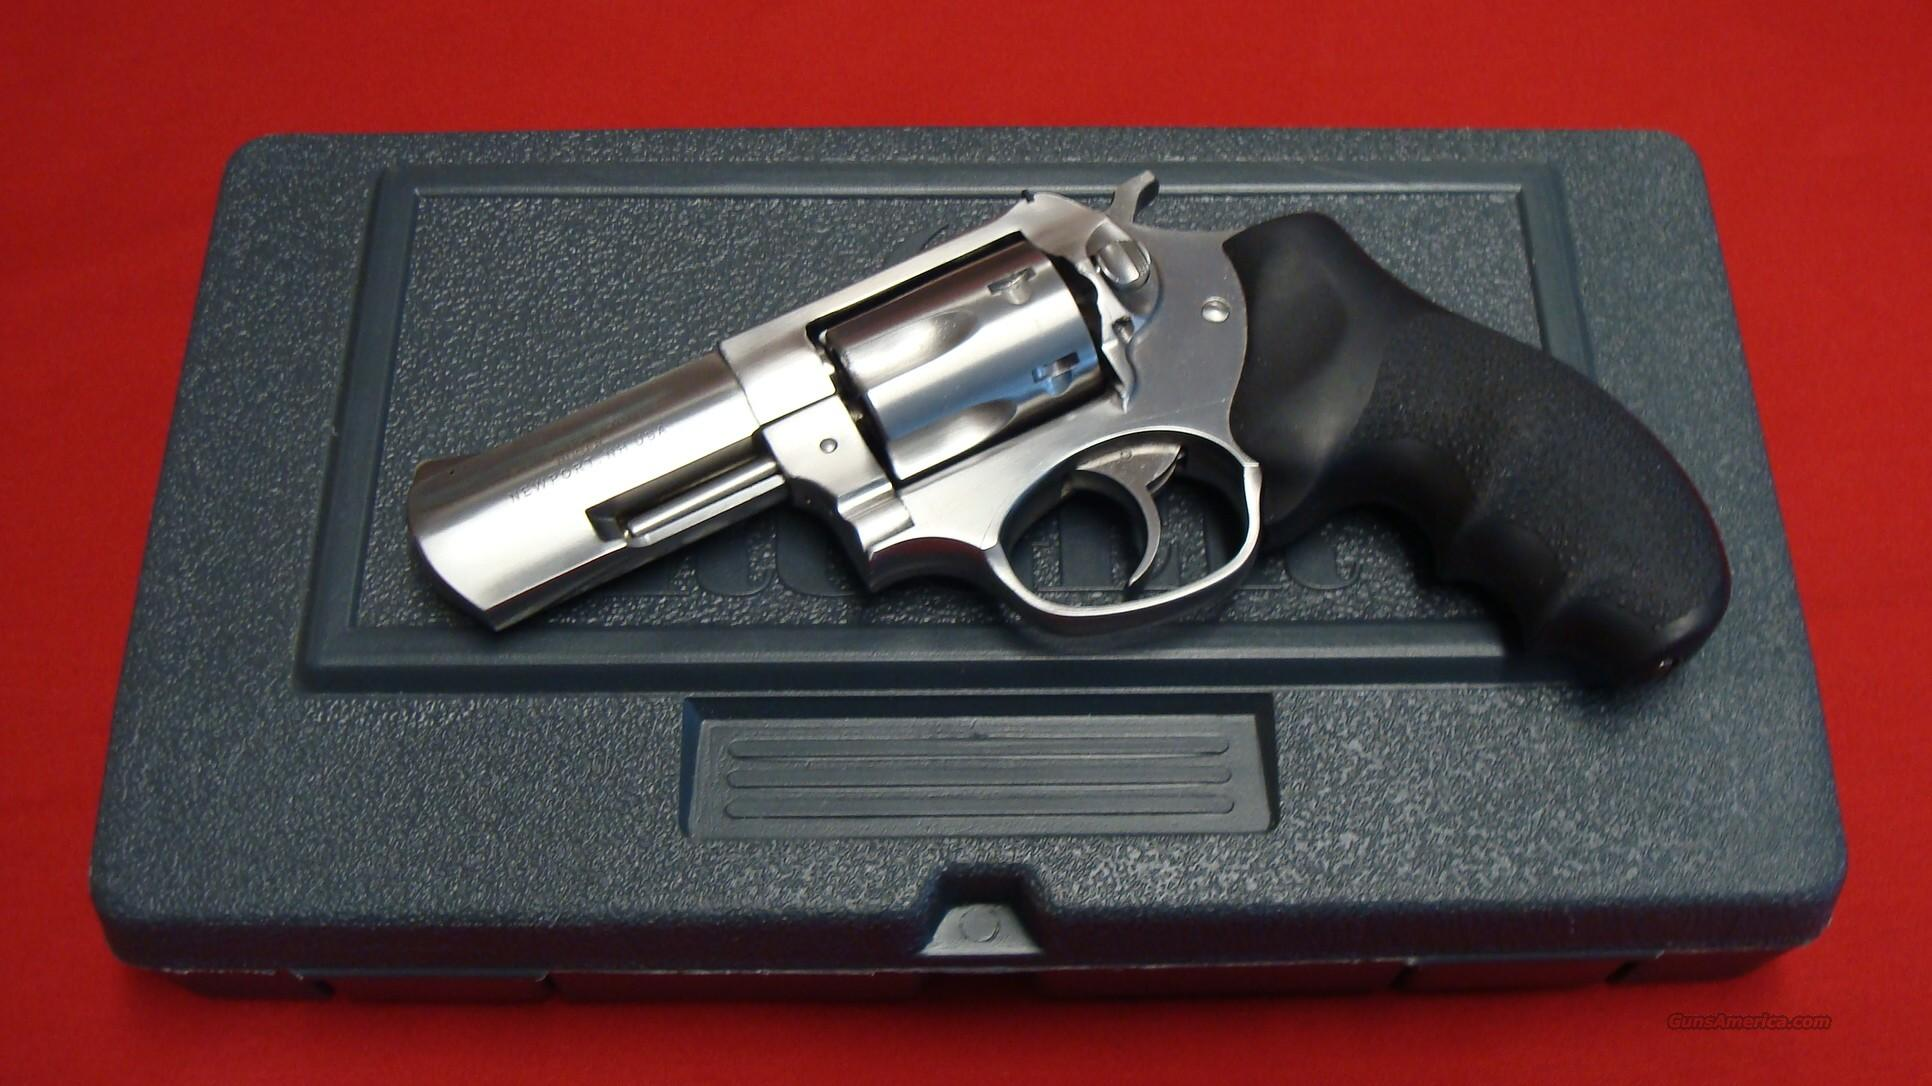 Category guns gt pistols gt ruger double action revolver gt sp101 type